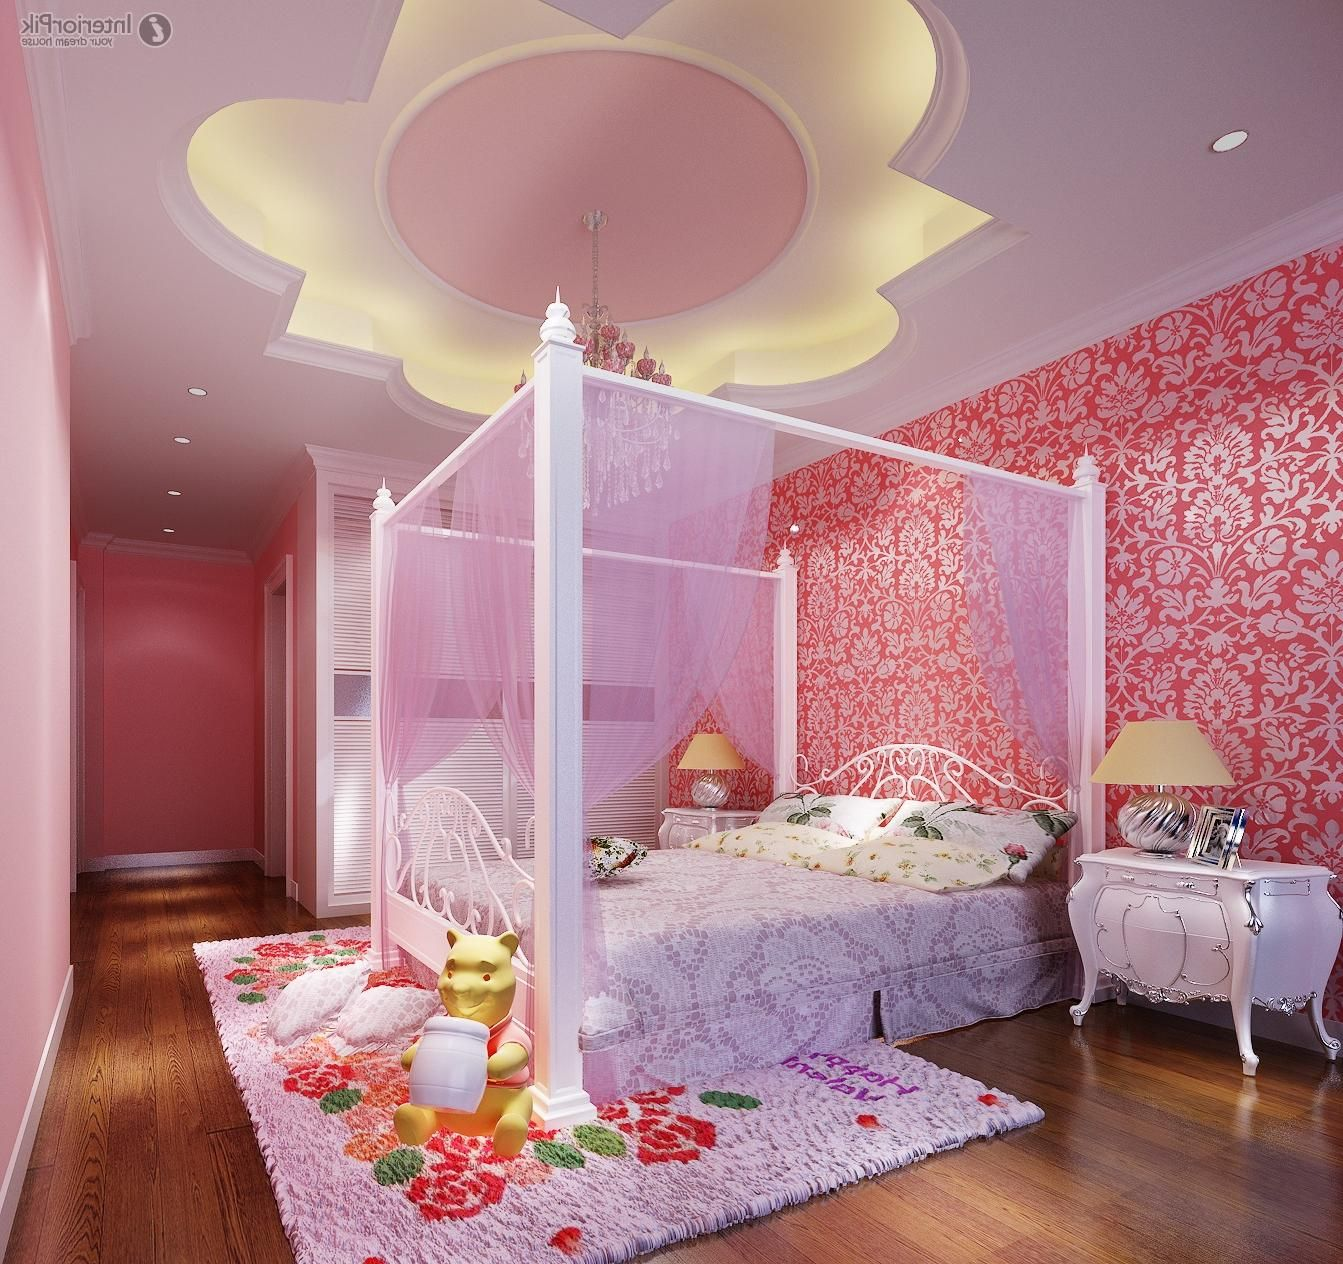 Amazing Girls Bedroom Decoration With Led Lighting In Floral Ceiling Including Pink Wallpaper Girl Bedroom Decor Girl Bedroom Designs Kids Bedroom Design Girls